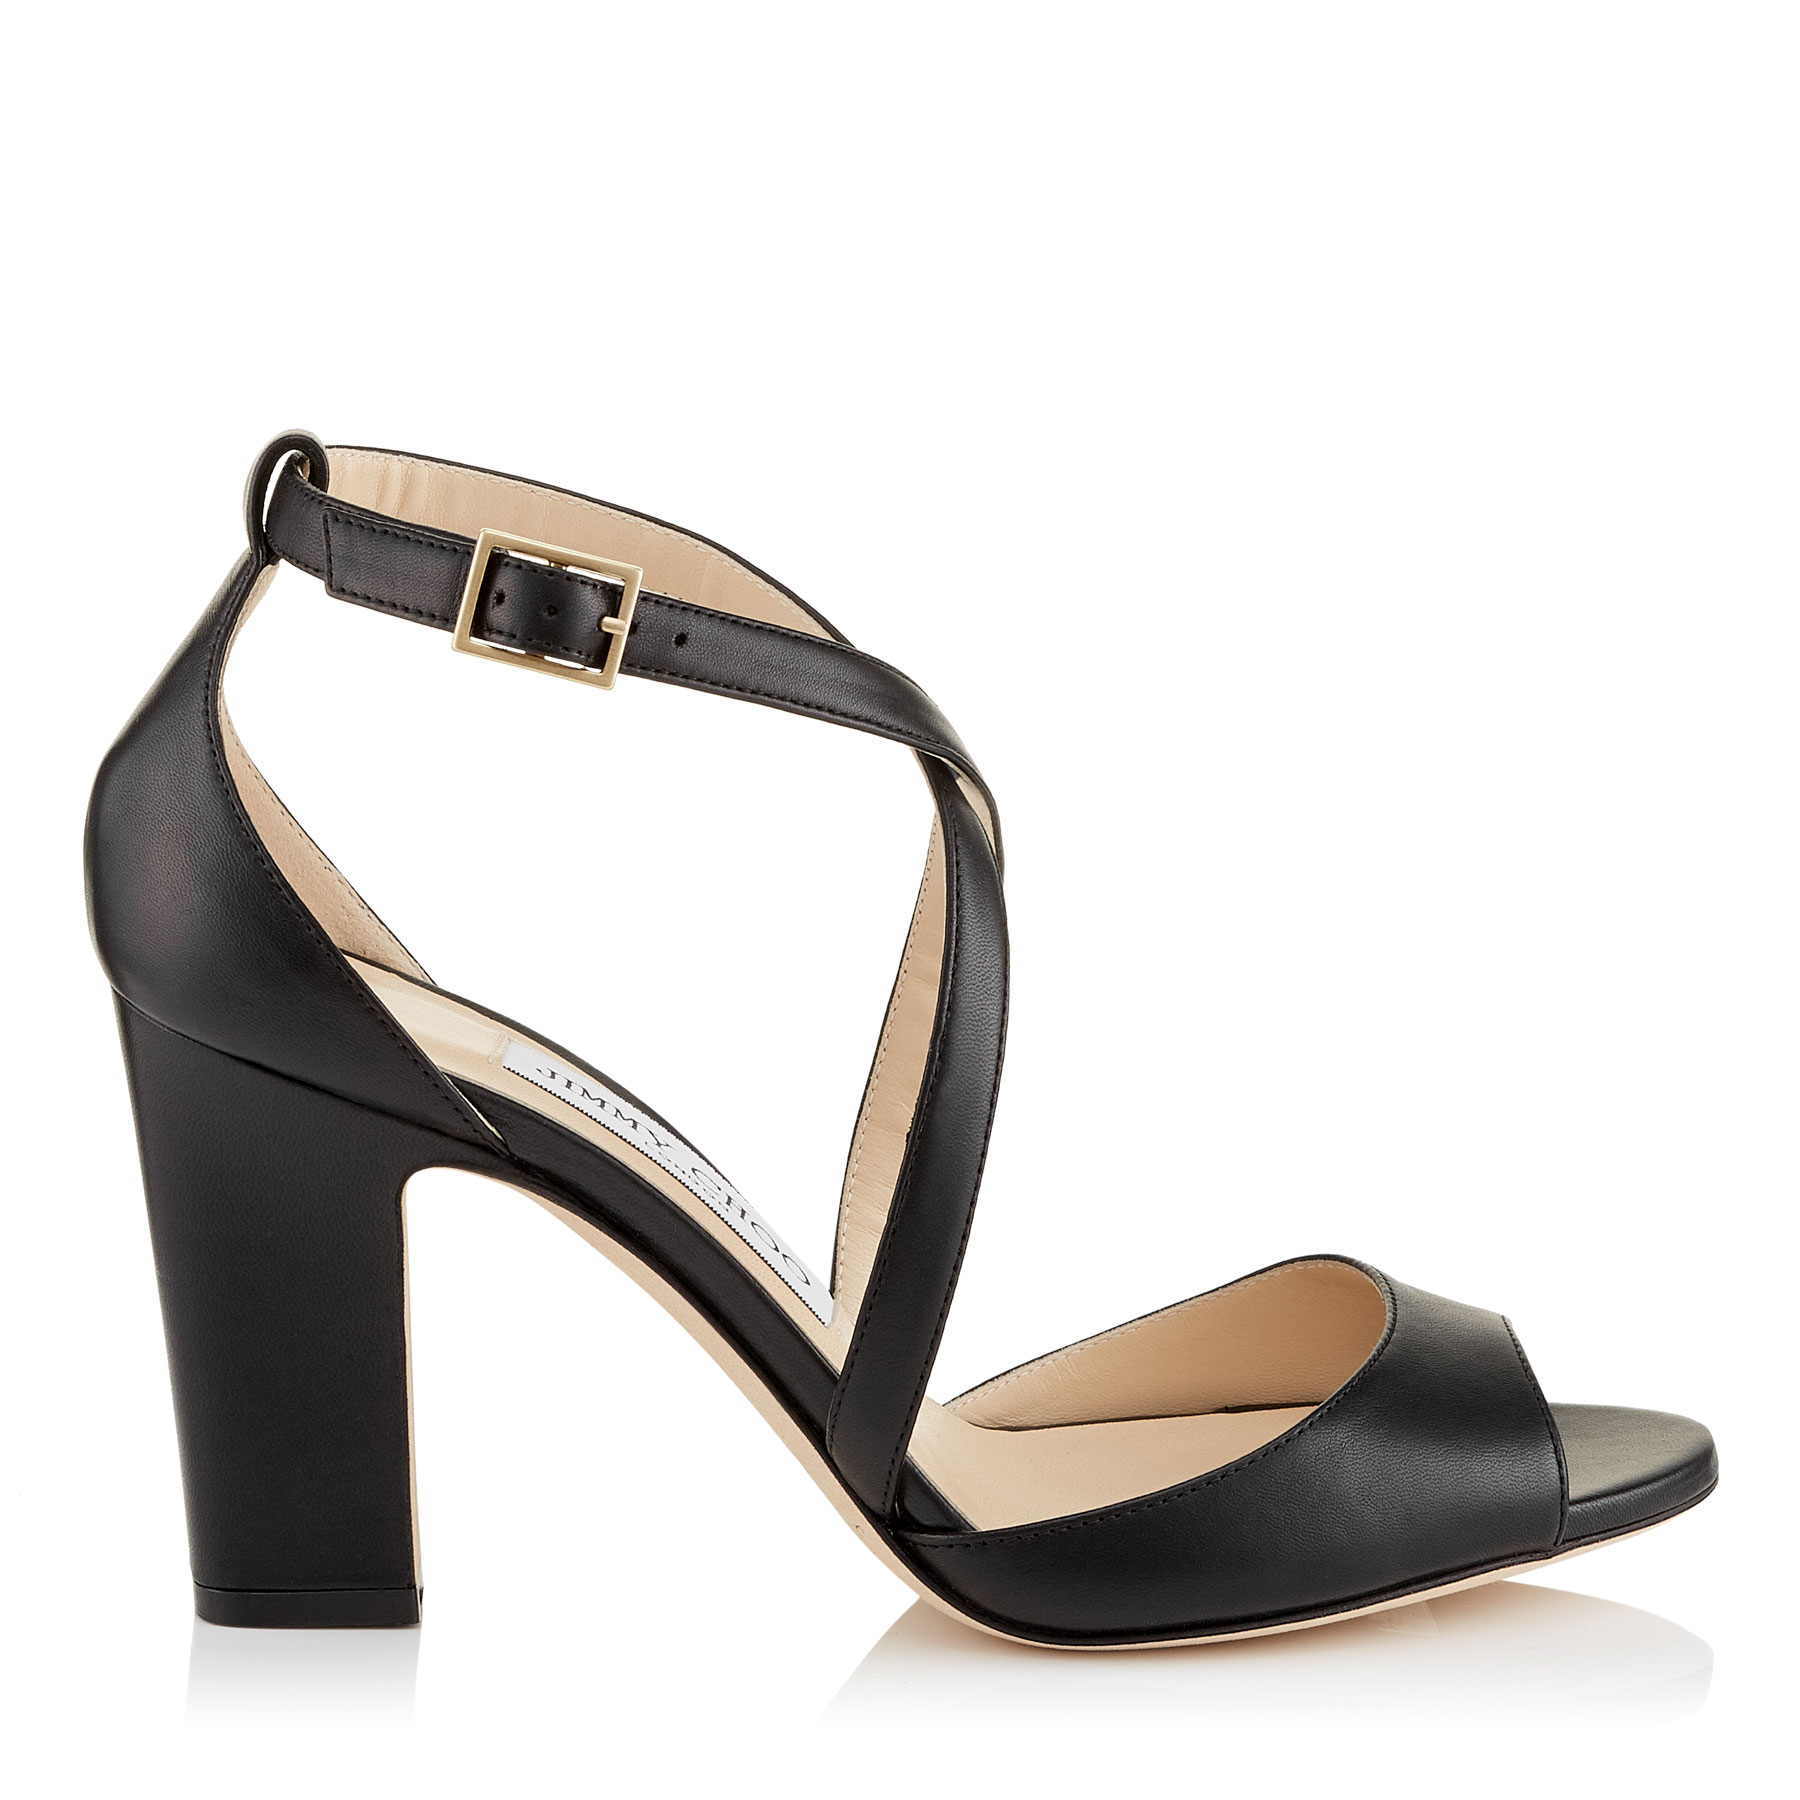 CARRIE 85 Black Nappa Leather Peep Toe Sandals by Jimmy Choo